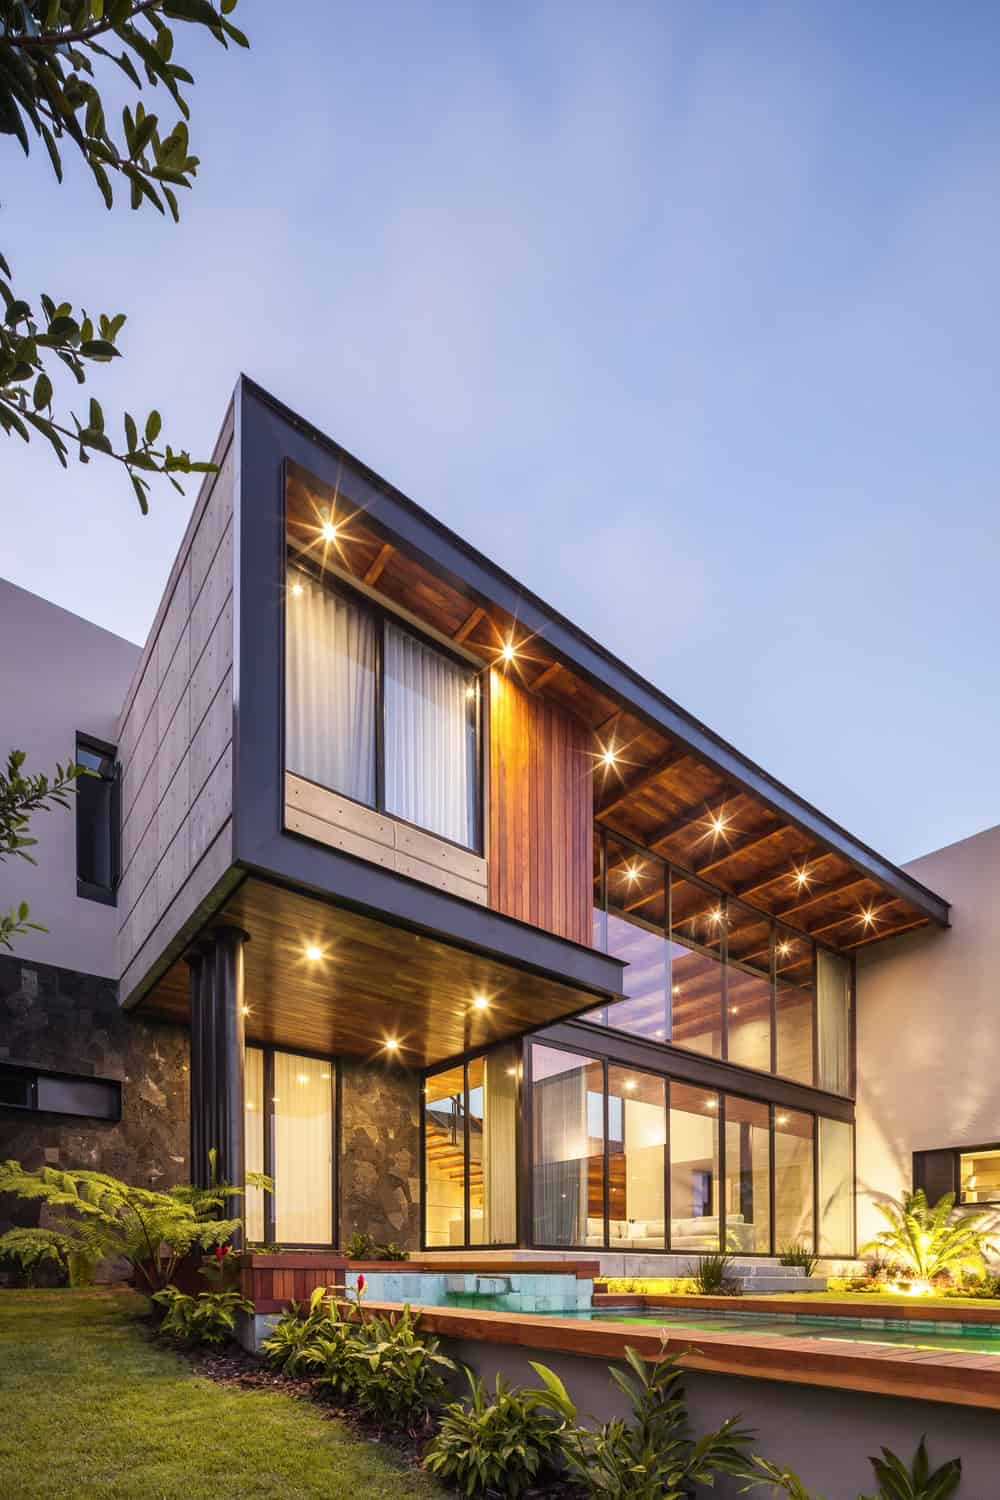 Angled exterior view of the Casa Kaleth designed by Di Frenna Arquitectos.